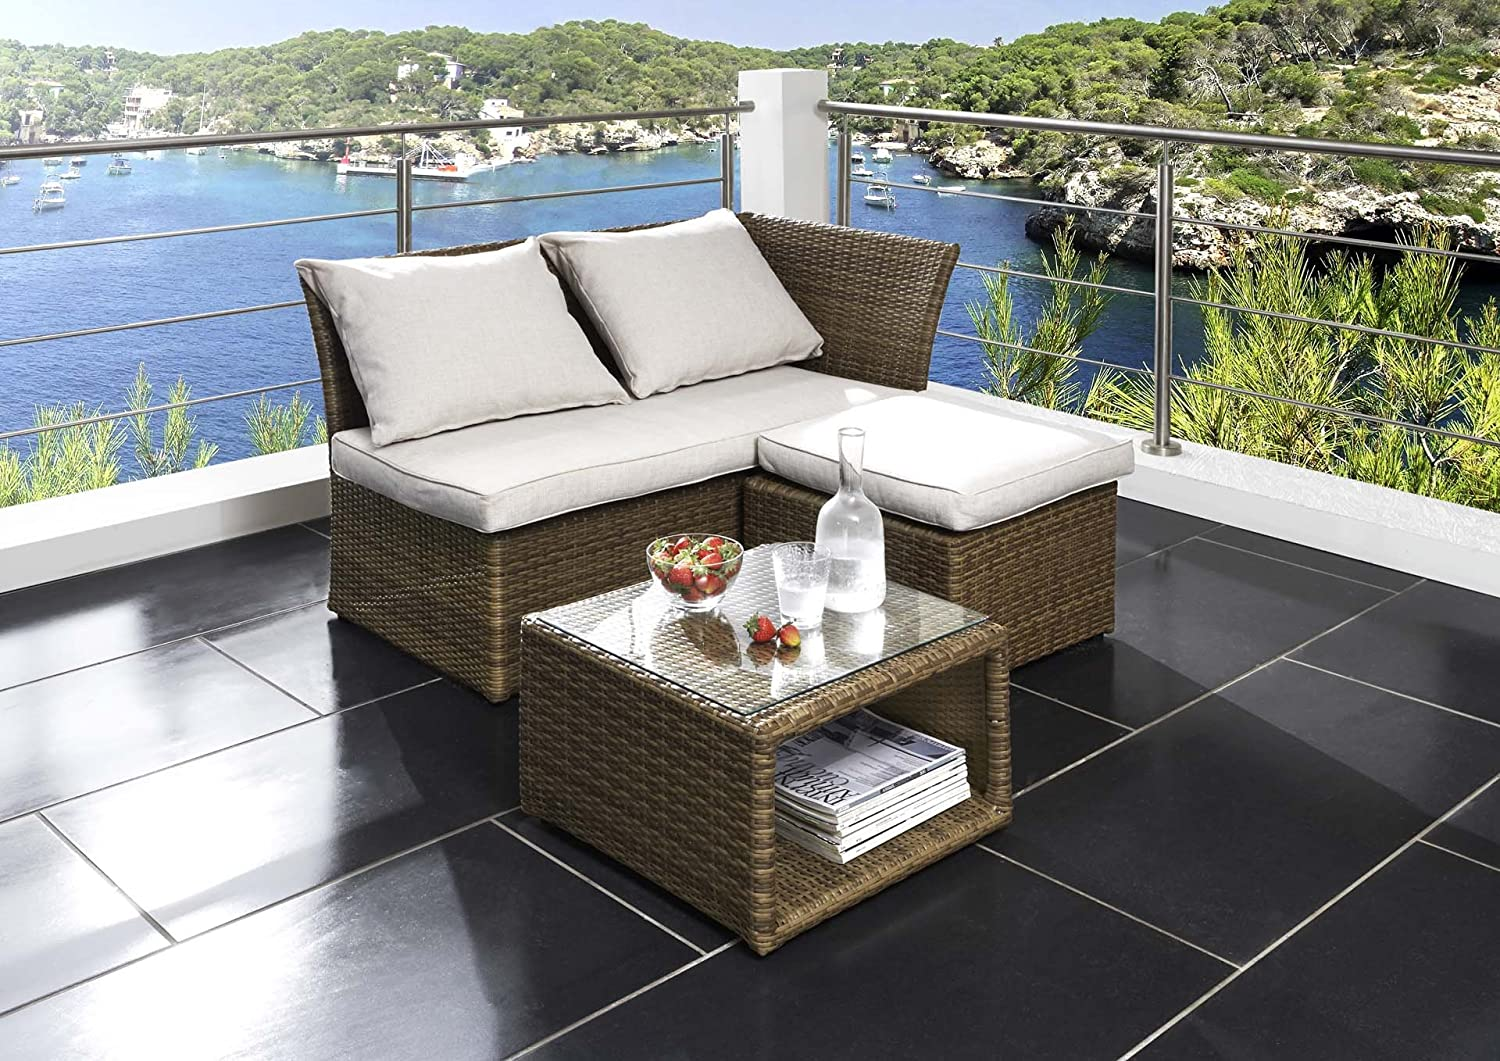 destiny lounge gartenm belset loft loungeset balkonset sitzgruppe polyrattan g nstig. Black Bedroom Furniture Sets. Home Design Ideas